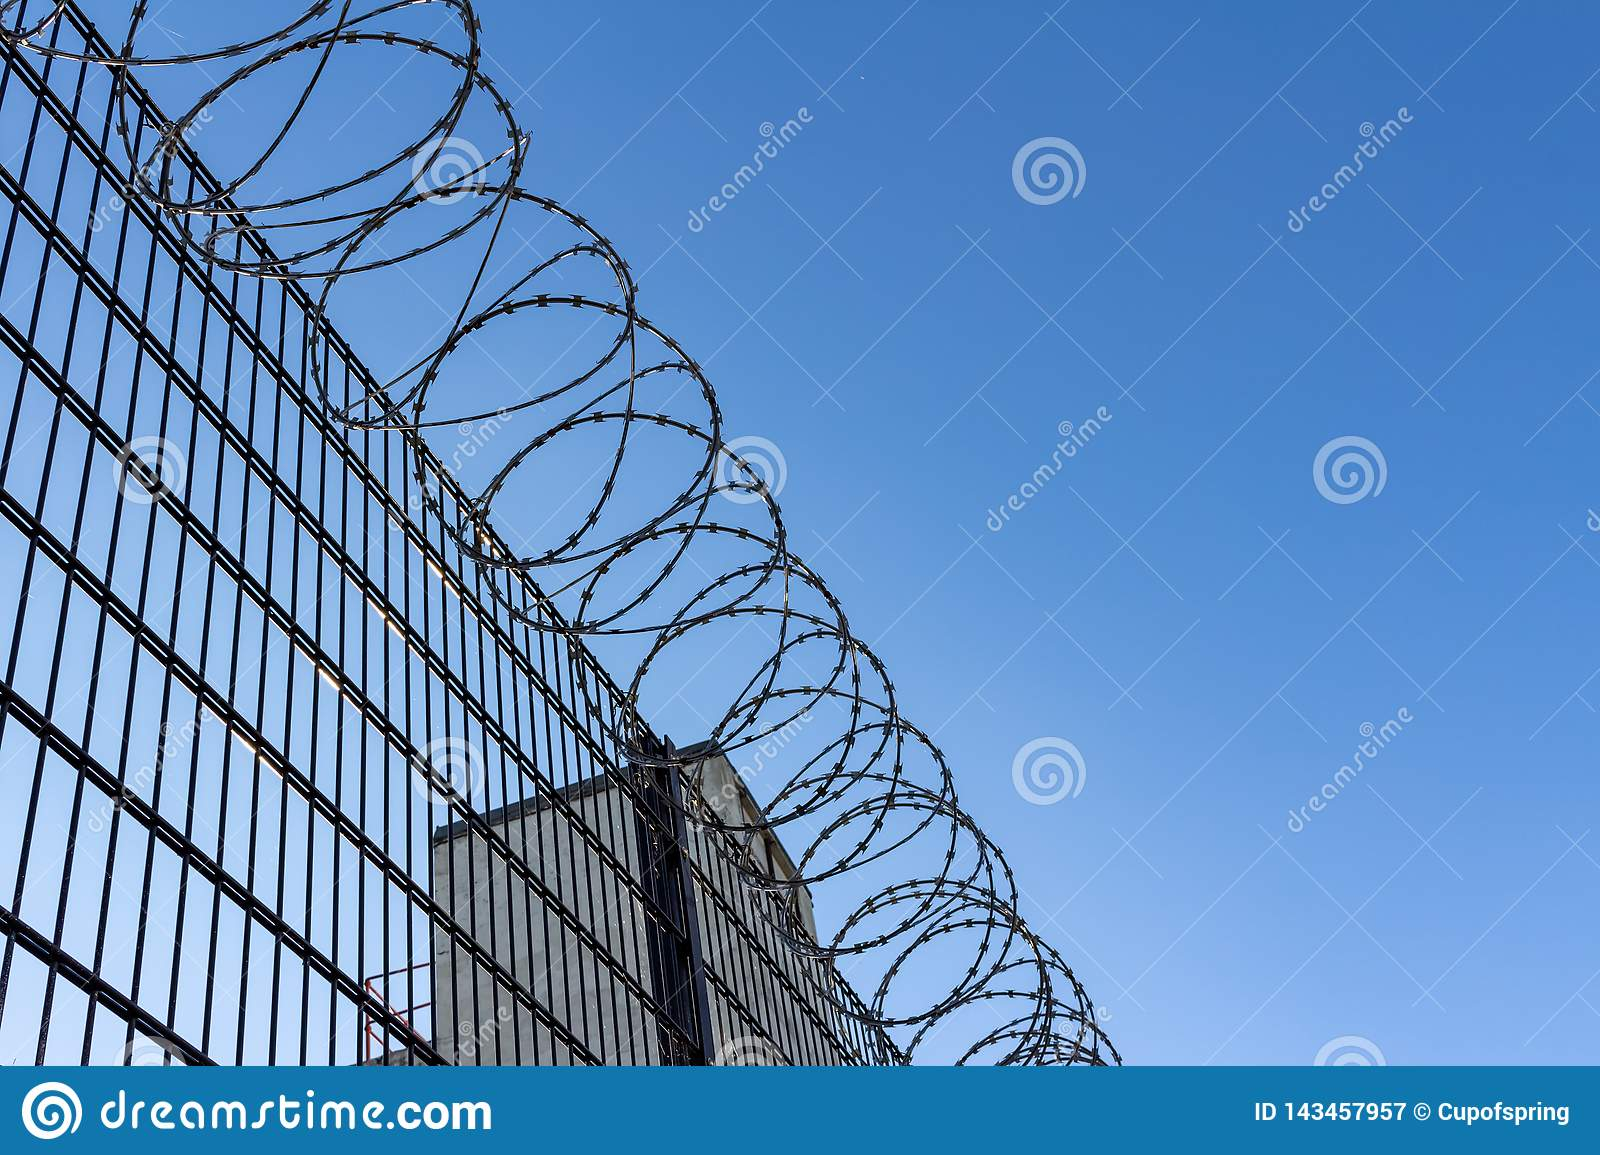 Barbed wire on blue sky background - Lost freedom and hope concept